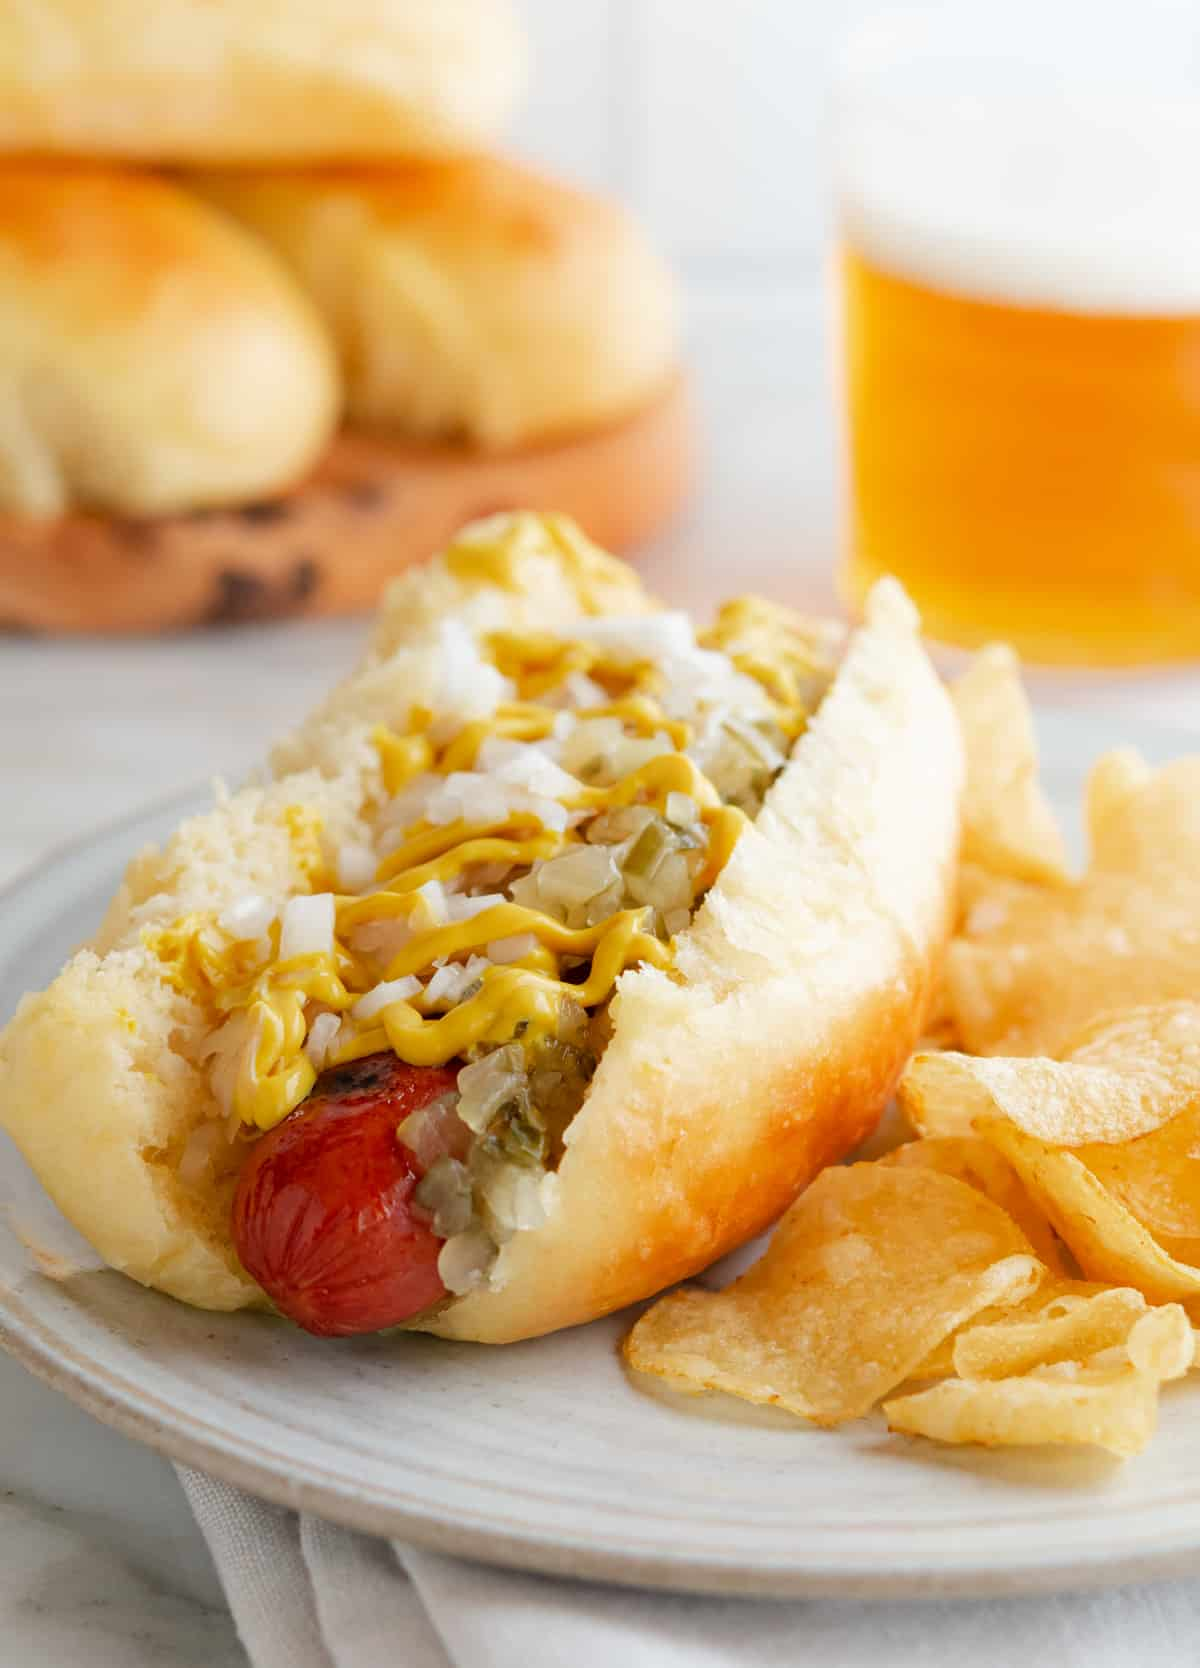 hot dog with toppings on a ceramic plate with potato chips and more brioche hot dog buns and a beer in the background